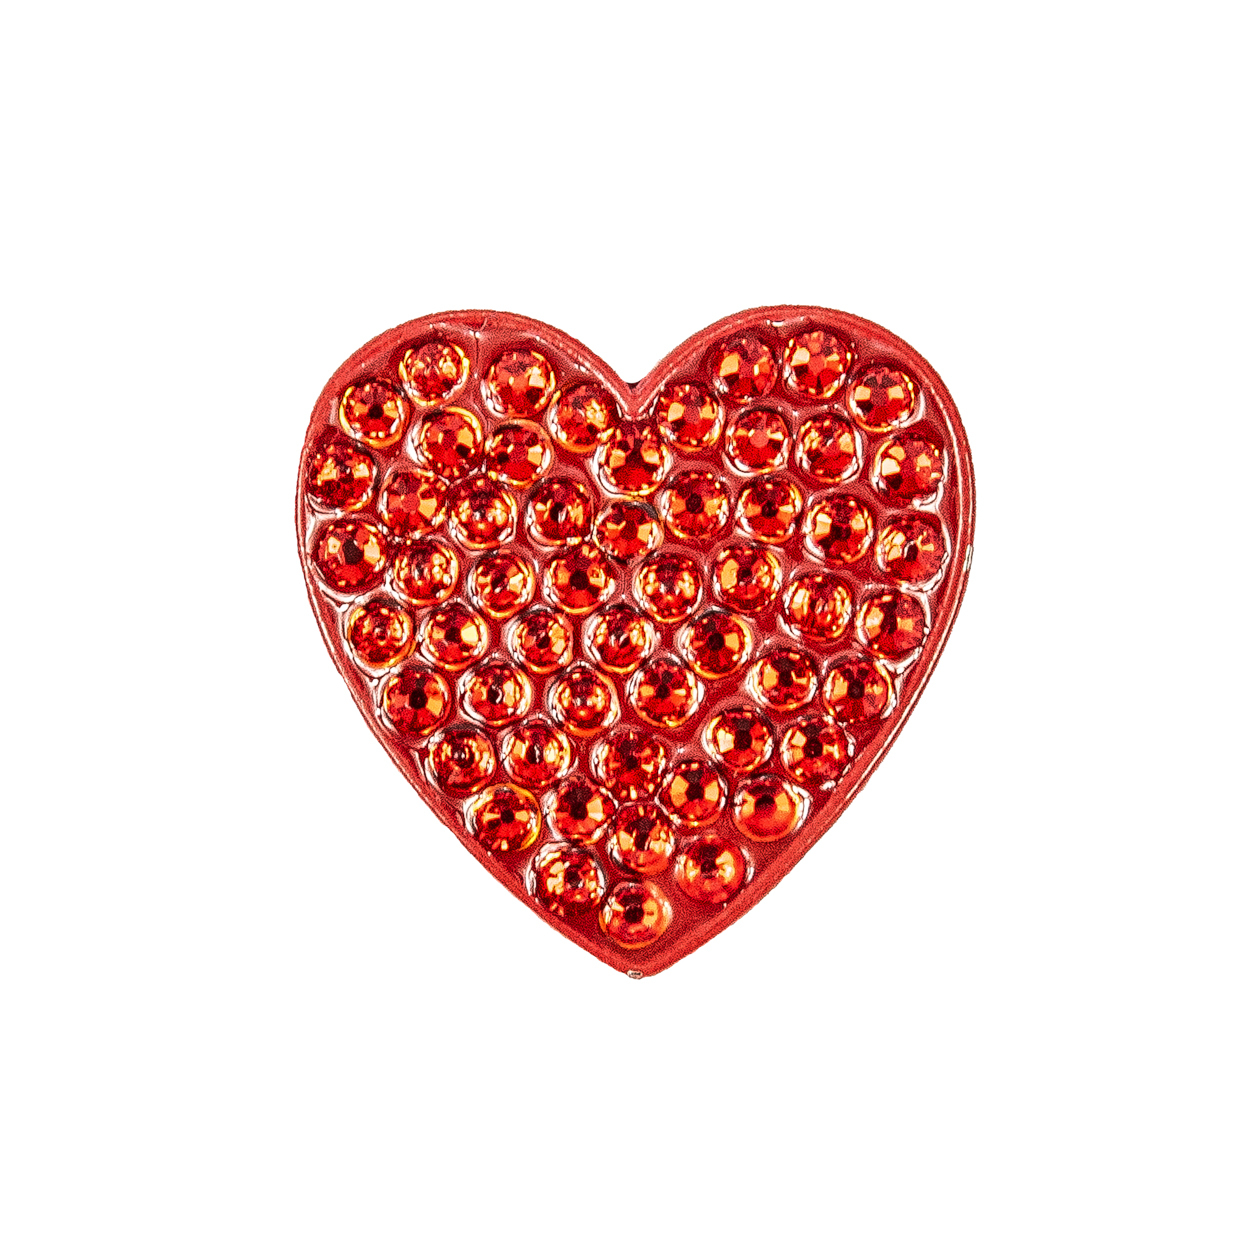 27. Heart Red